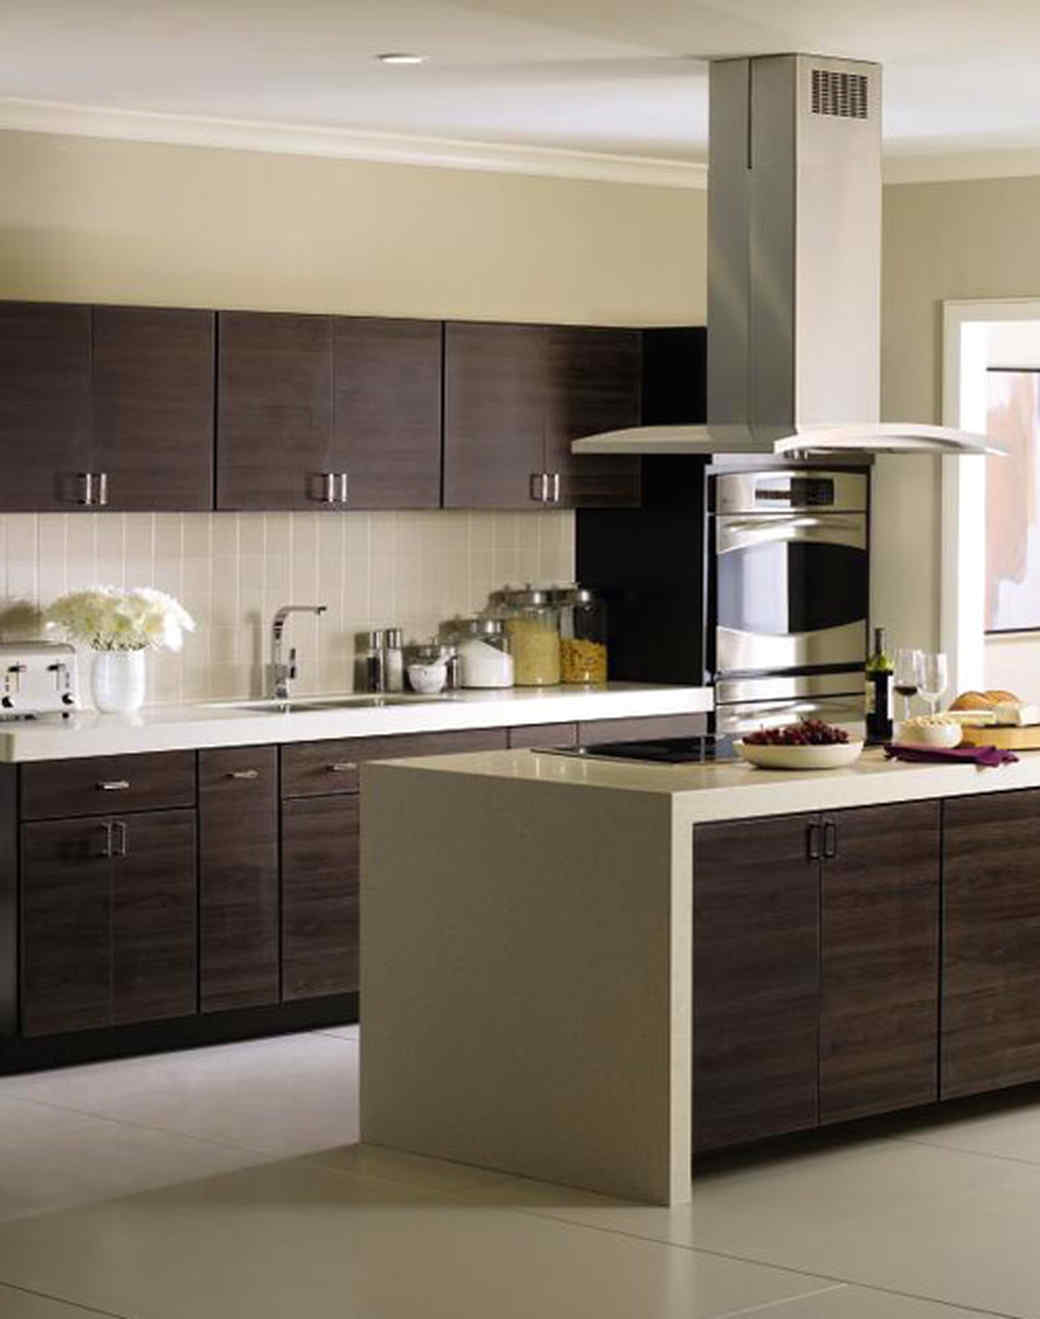 Kitchen Images Hd : kitchen, images, Kitchen, Design, Images, Architec, Ideas